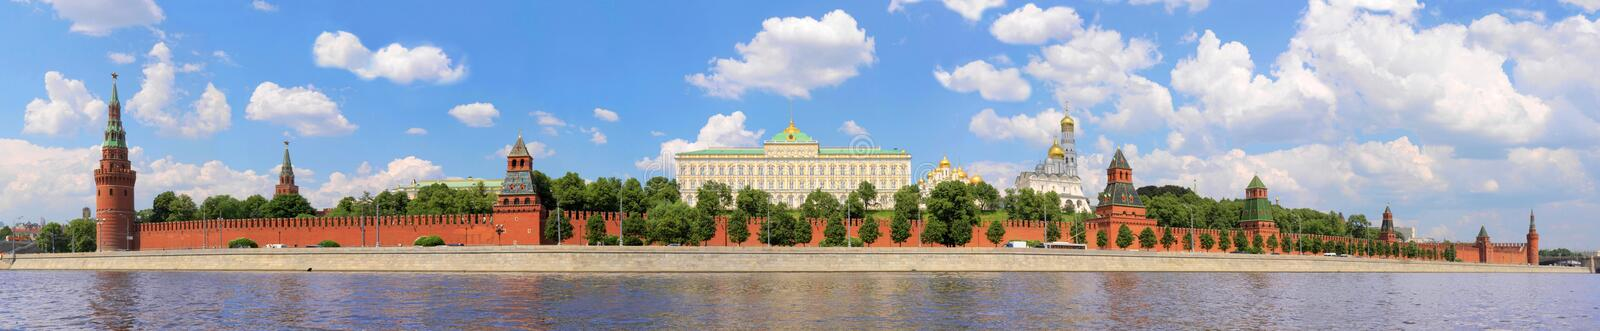 Moscou Kremlin, Moscou, Russie image stock